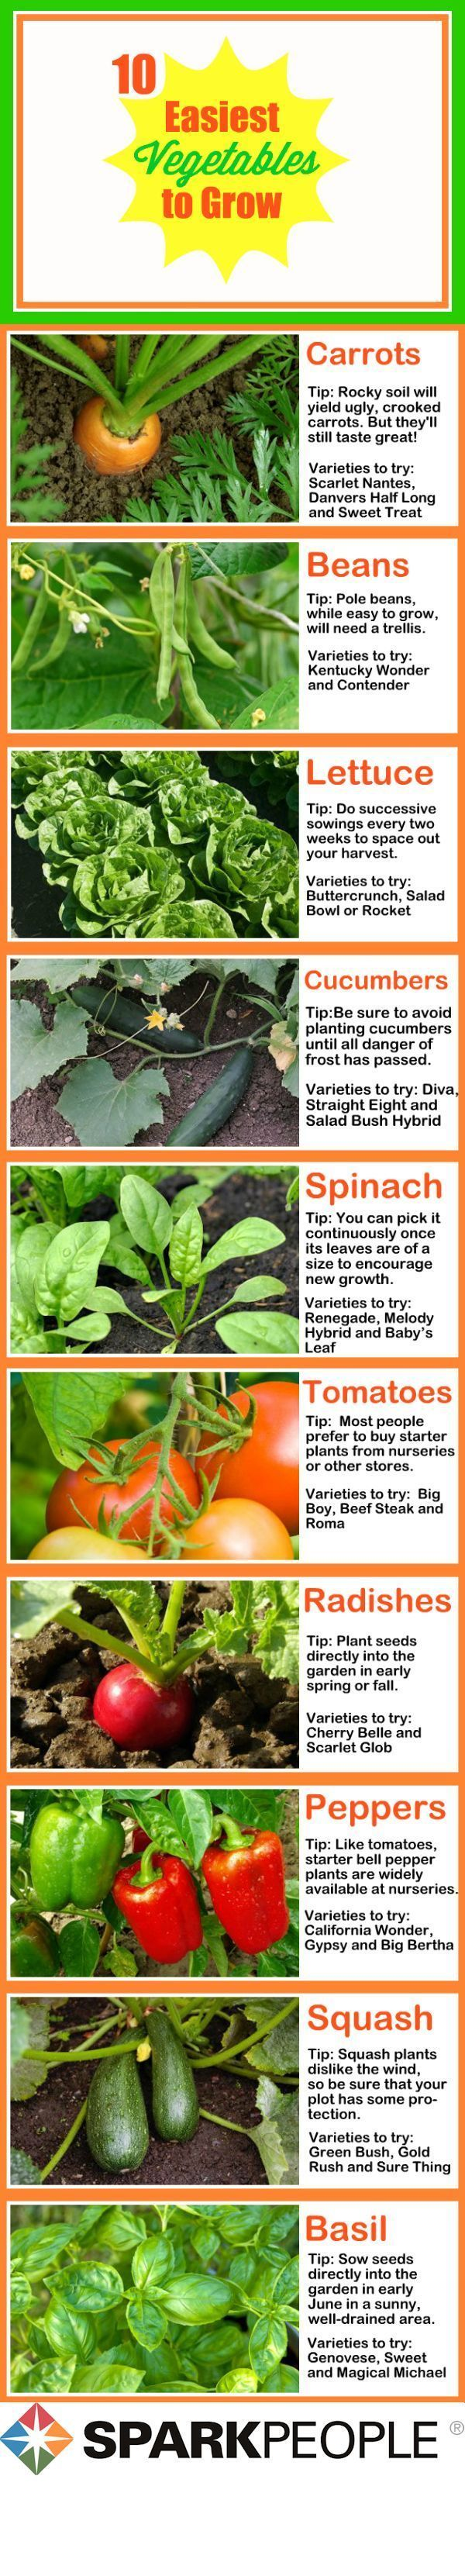 The 10 Easiest Vegetables to Grow:  You don't have to have a green thumb to grow these easy plants! | via @SparkPeople #food #garden #spring